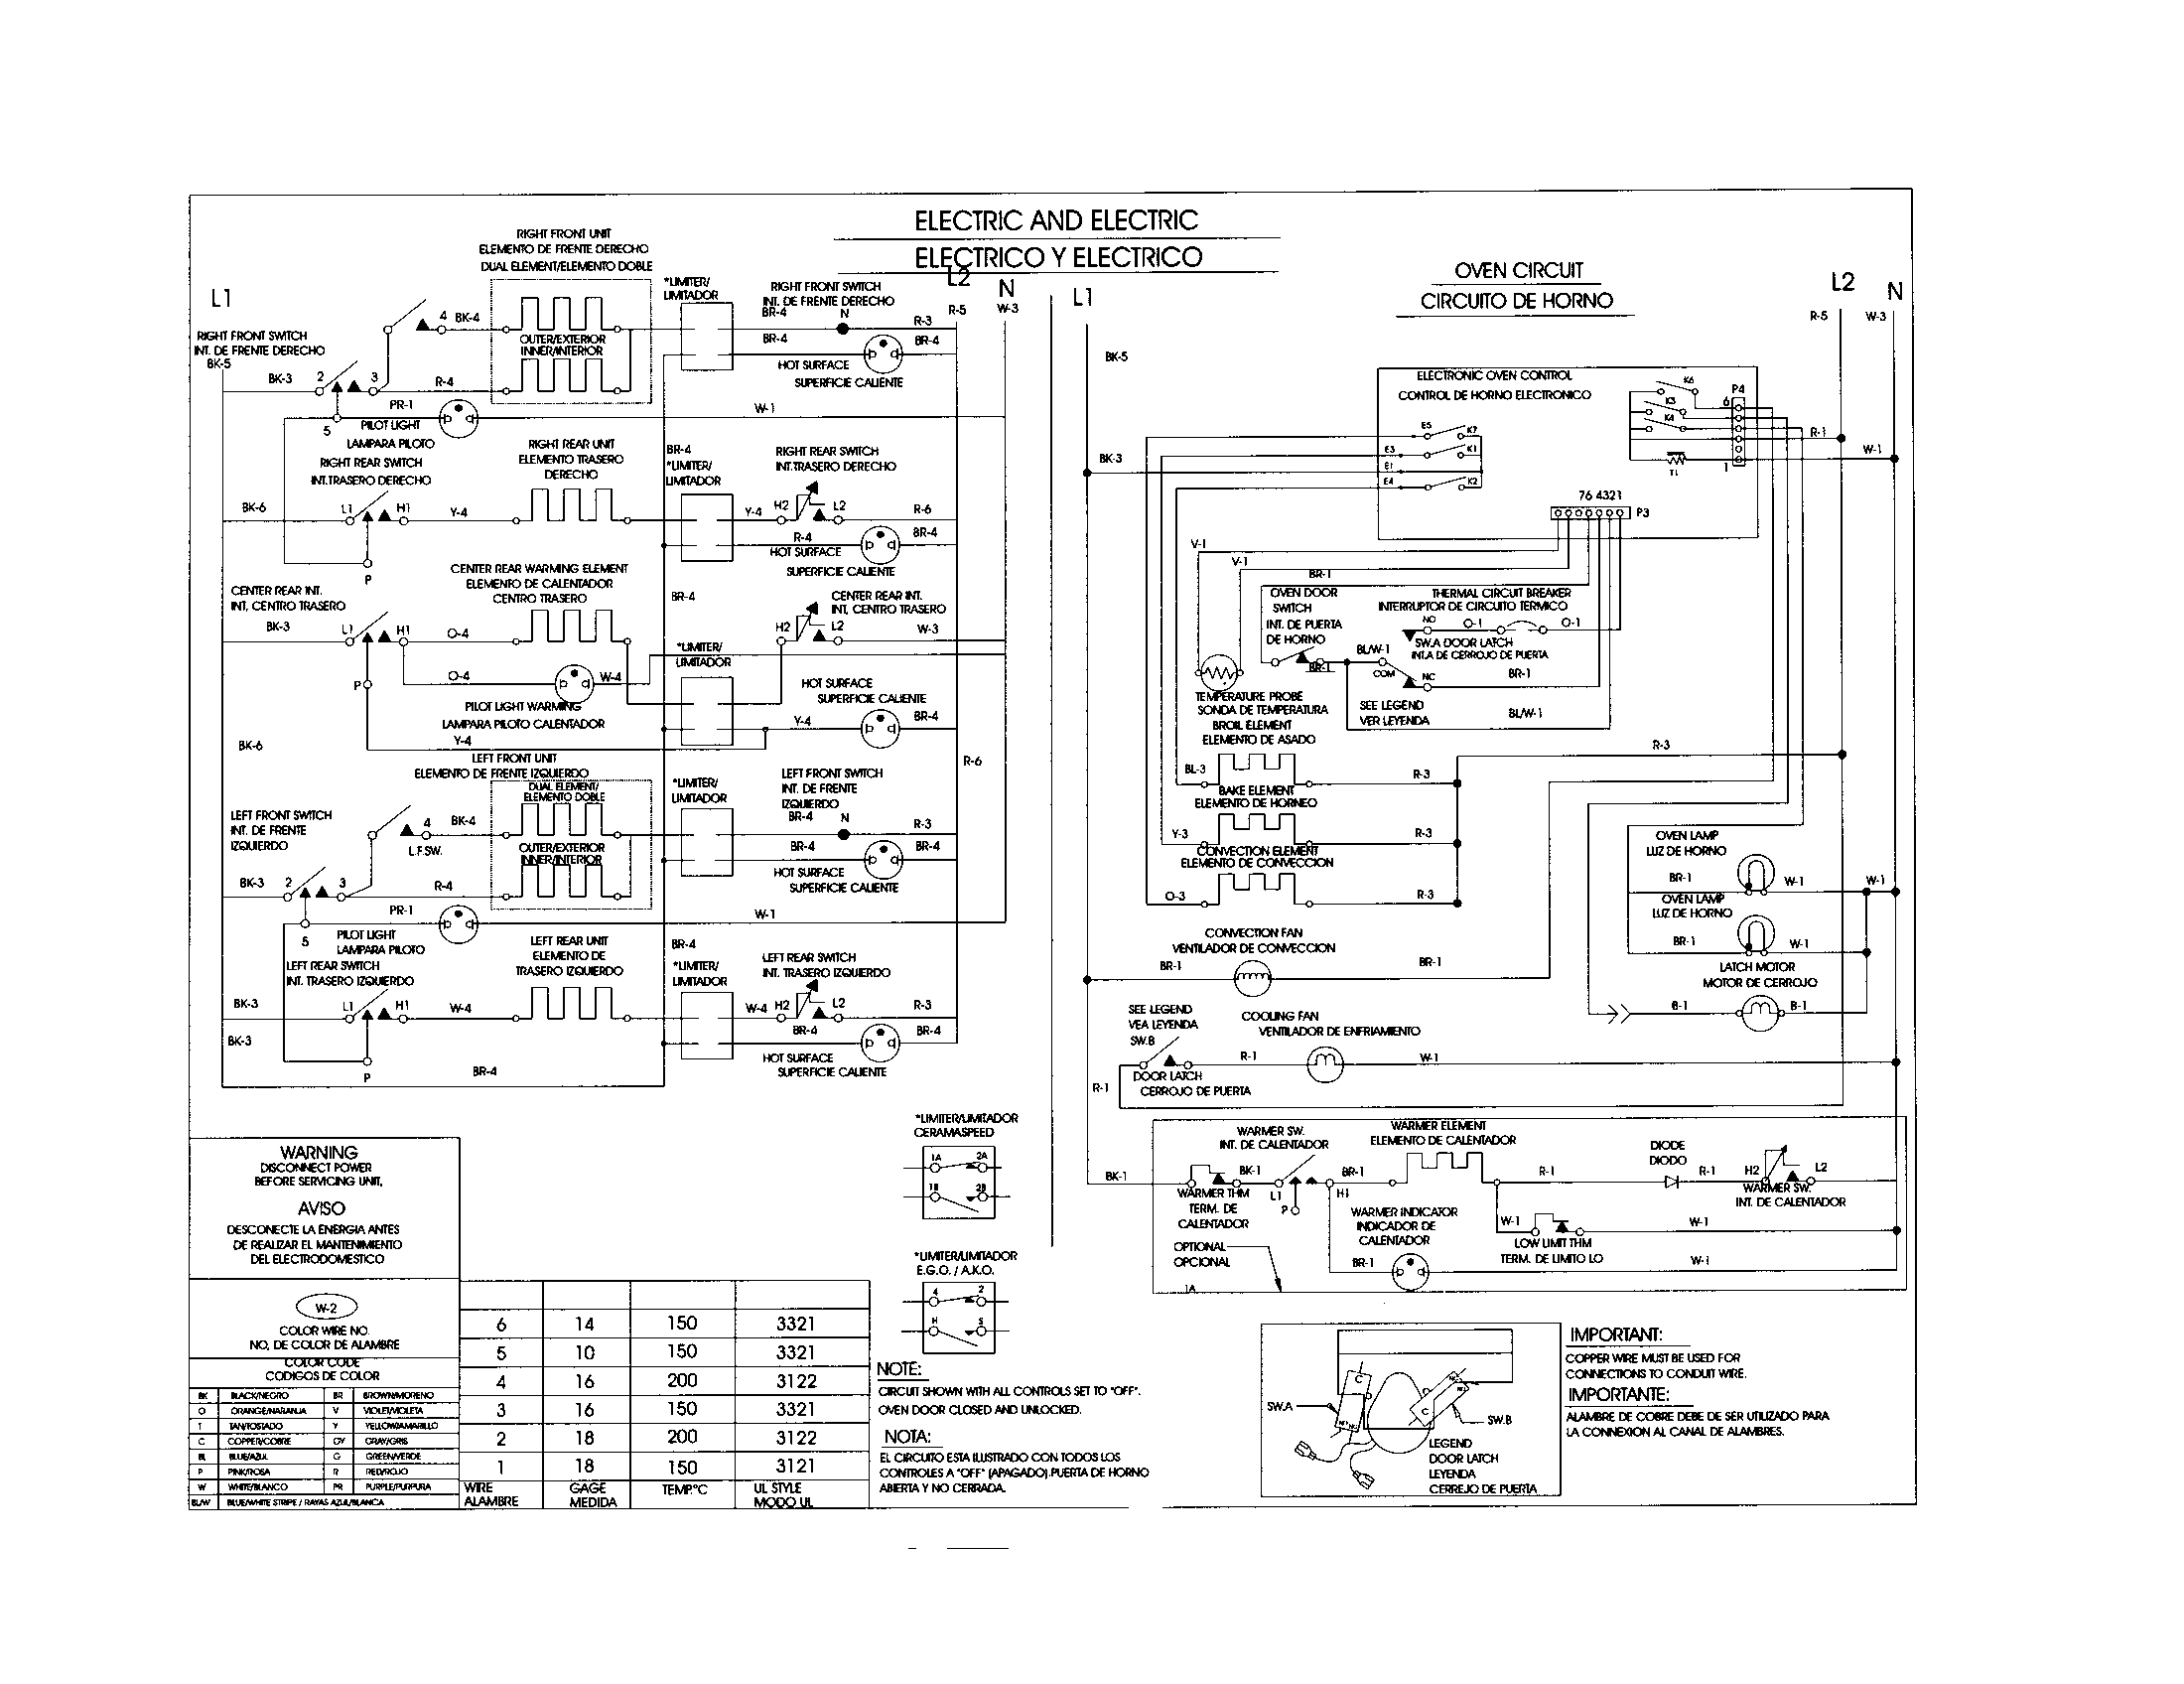 kenmore dishwasher wiring diagram to wiring diagram parts with regard to kenmore elite dishwasher 665 parts diagram wiring diagram for kenmore 665 13969k010 dishwasher wiring  at gsmx.co